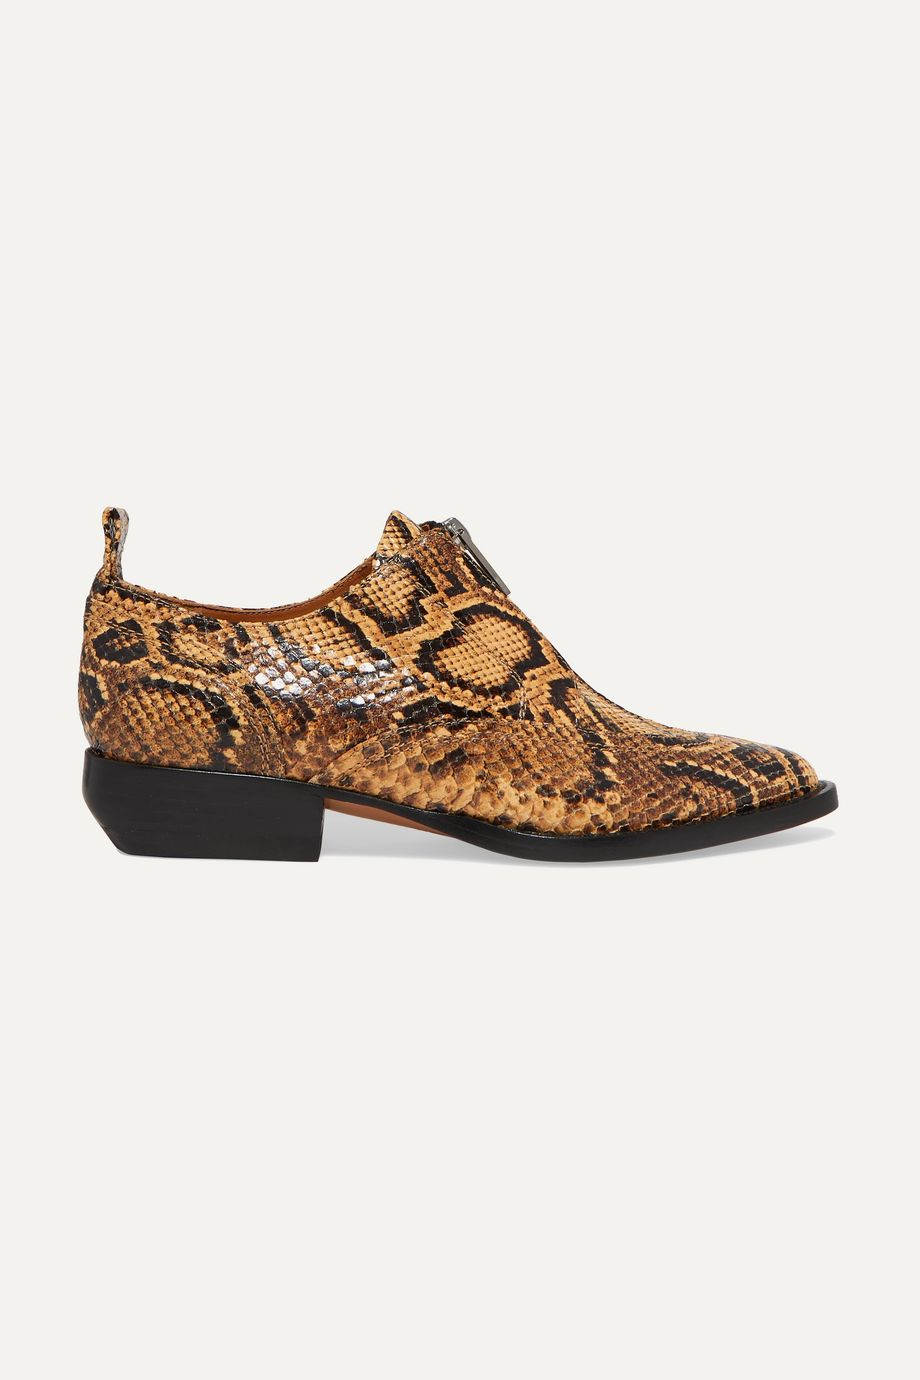 Chloé Rylee snake-effect leather brogues